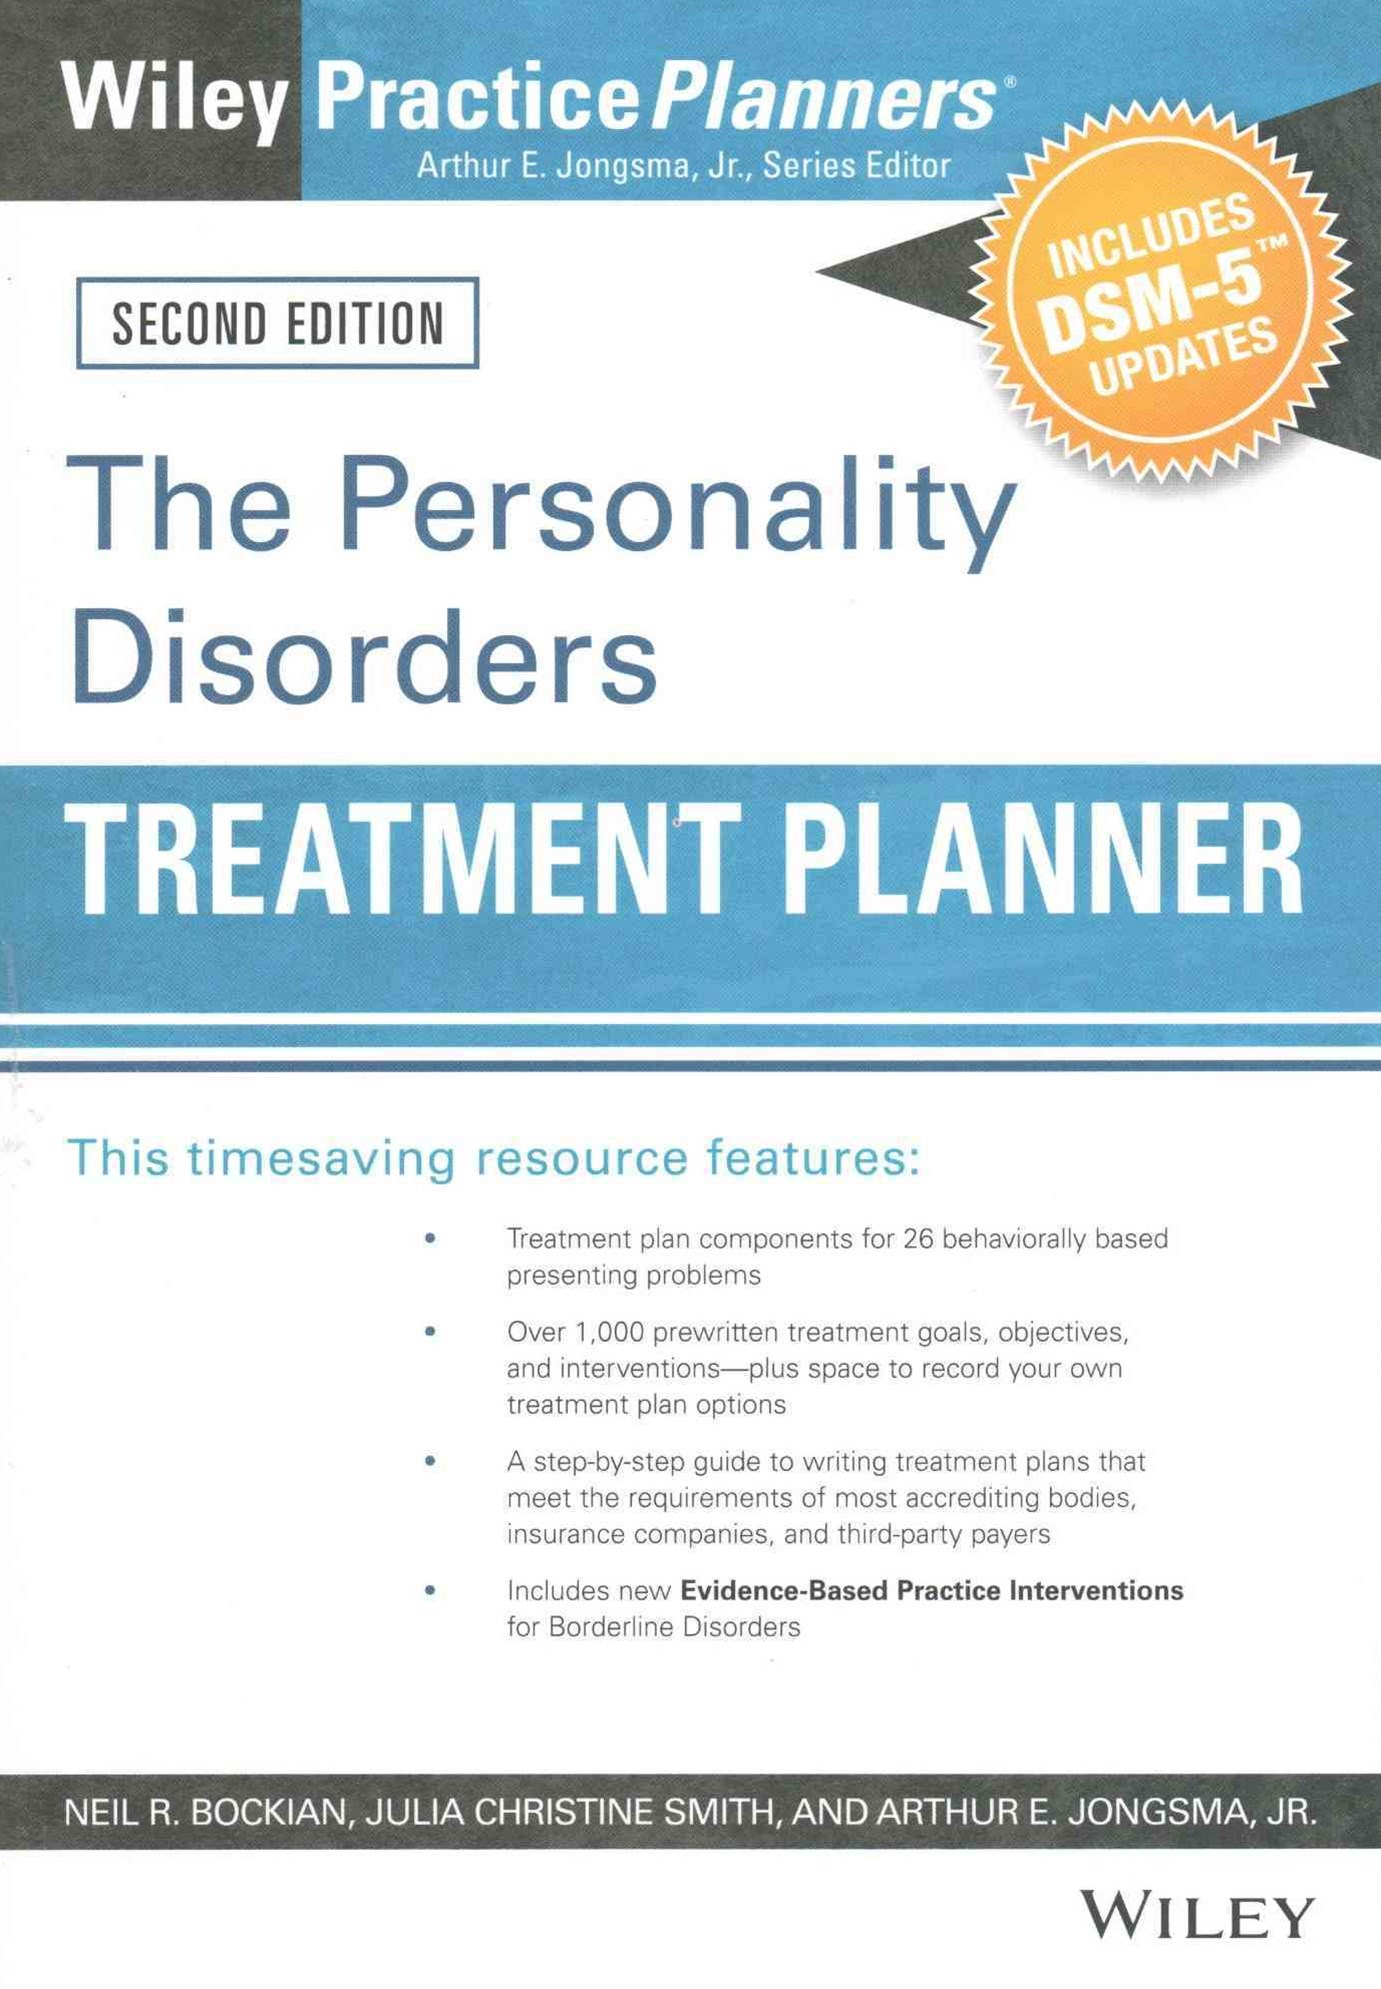 The Personality Disorders Treatment Planner, Second Edition